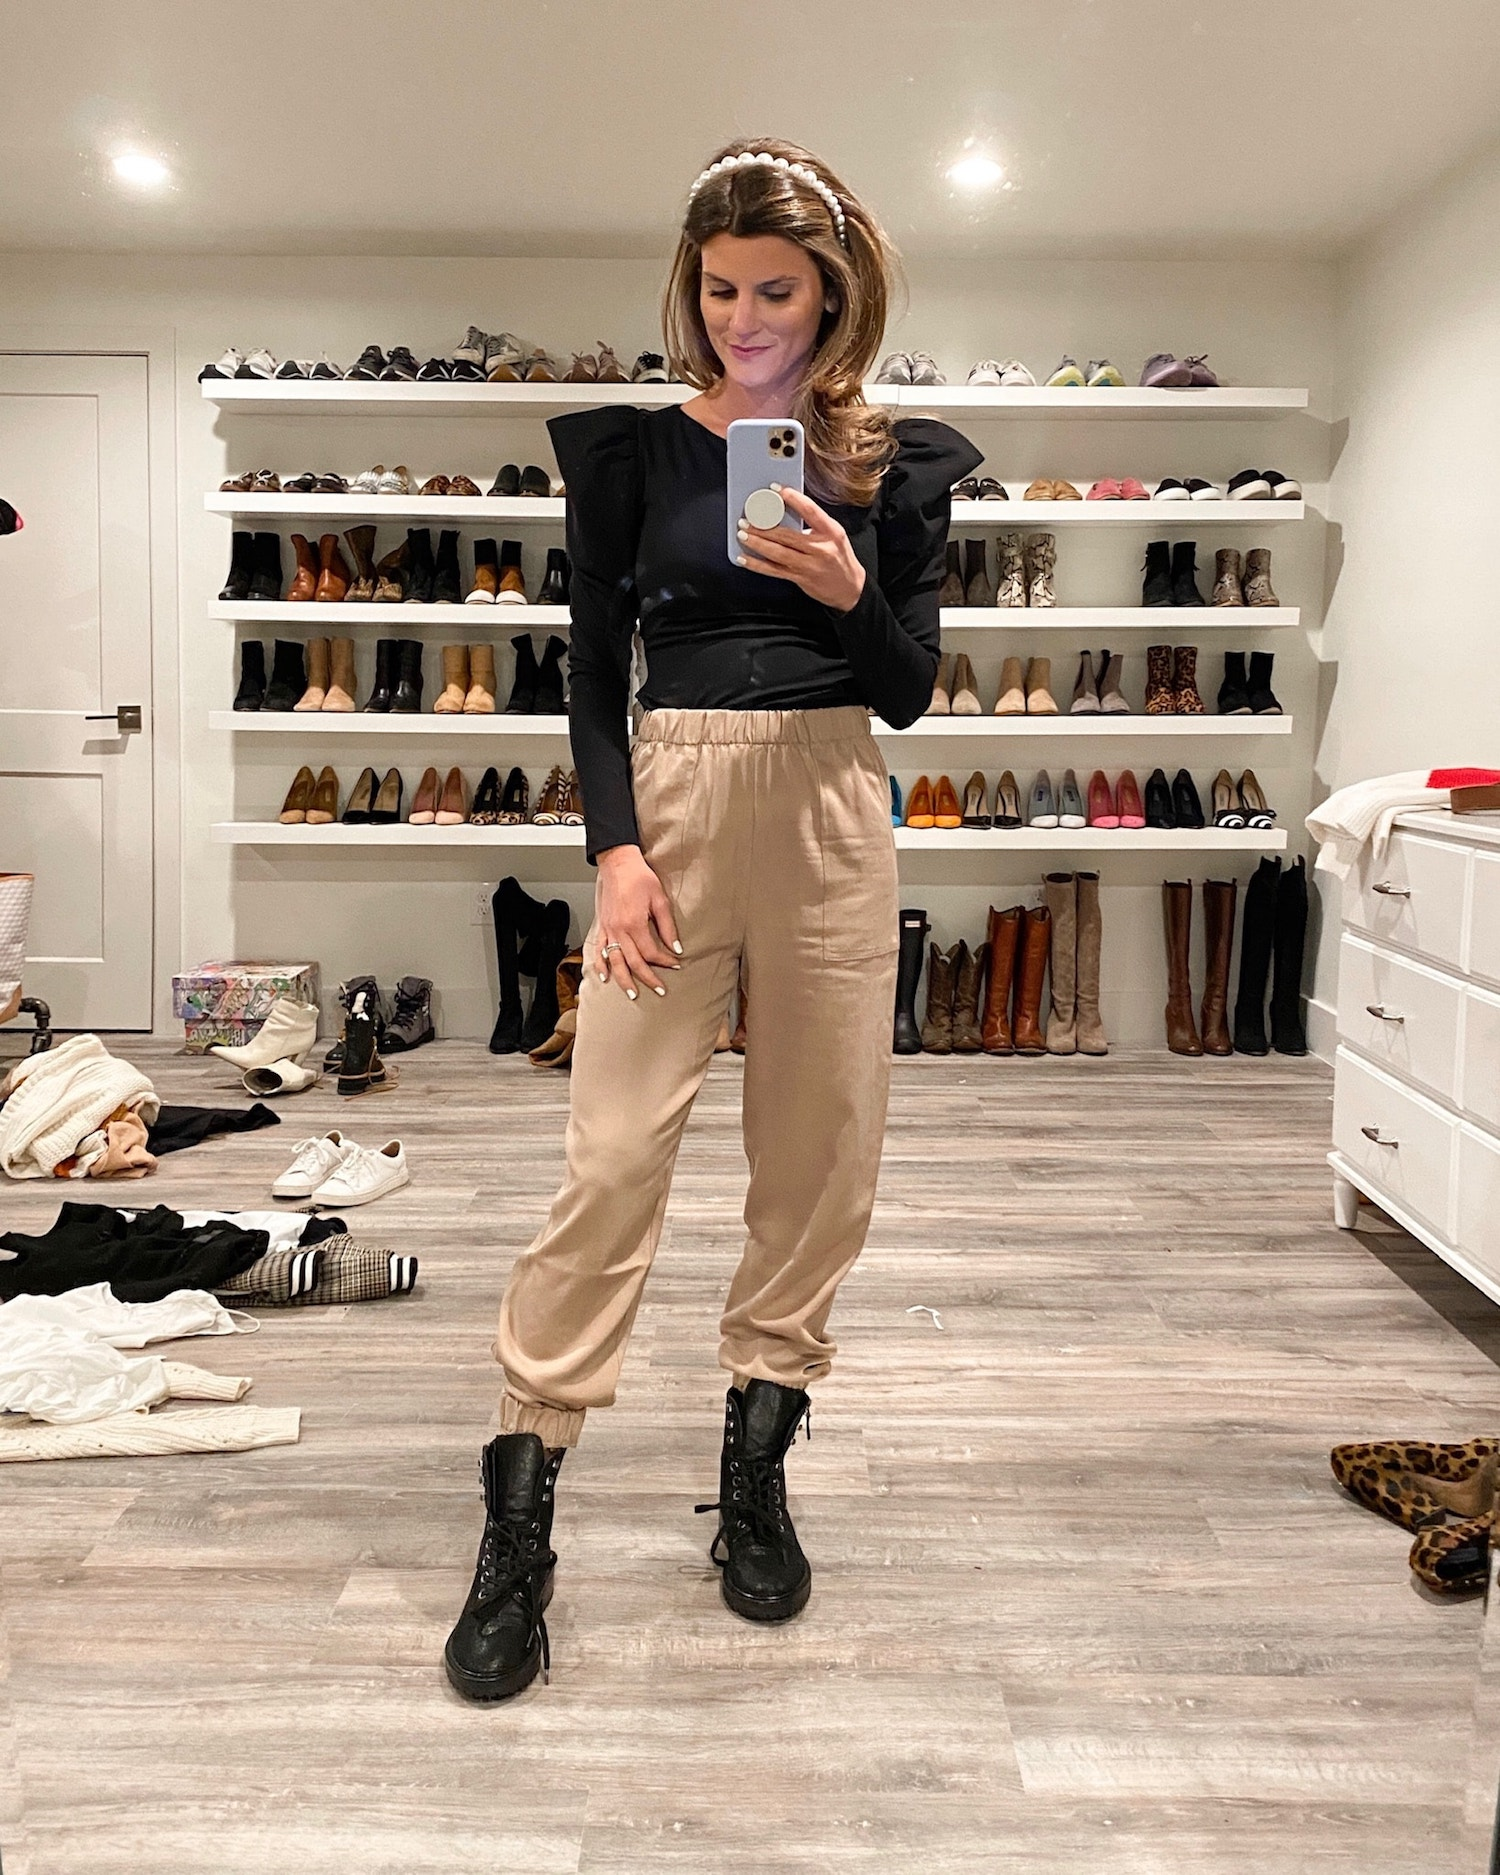 Brighton Keller wearing black puff sleeve sweater, tan joggers and combat boots